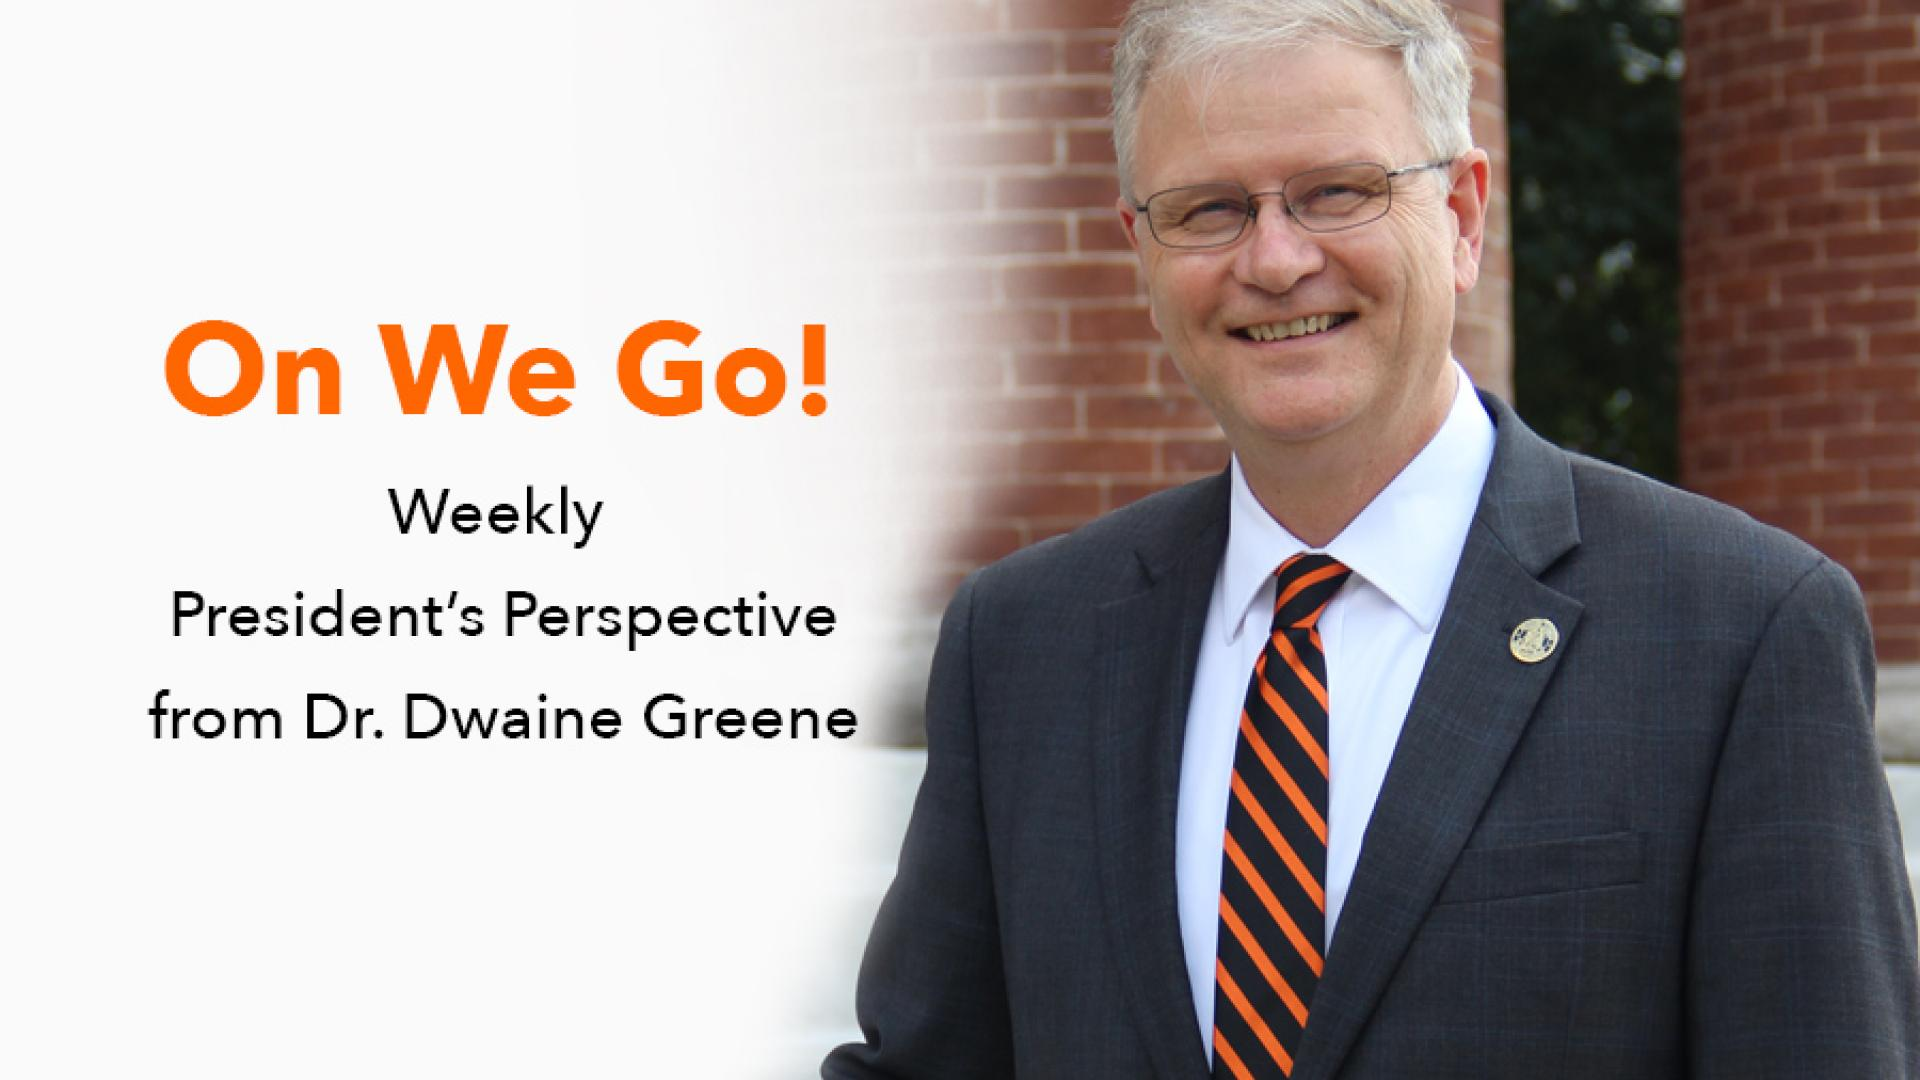 ON WE GO! - Weekly President's Perspective from Dr. Greene - February 14, 2018